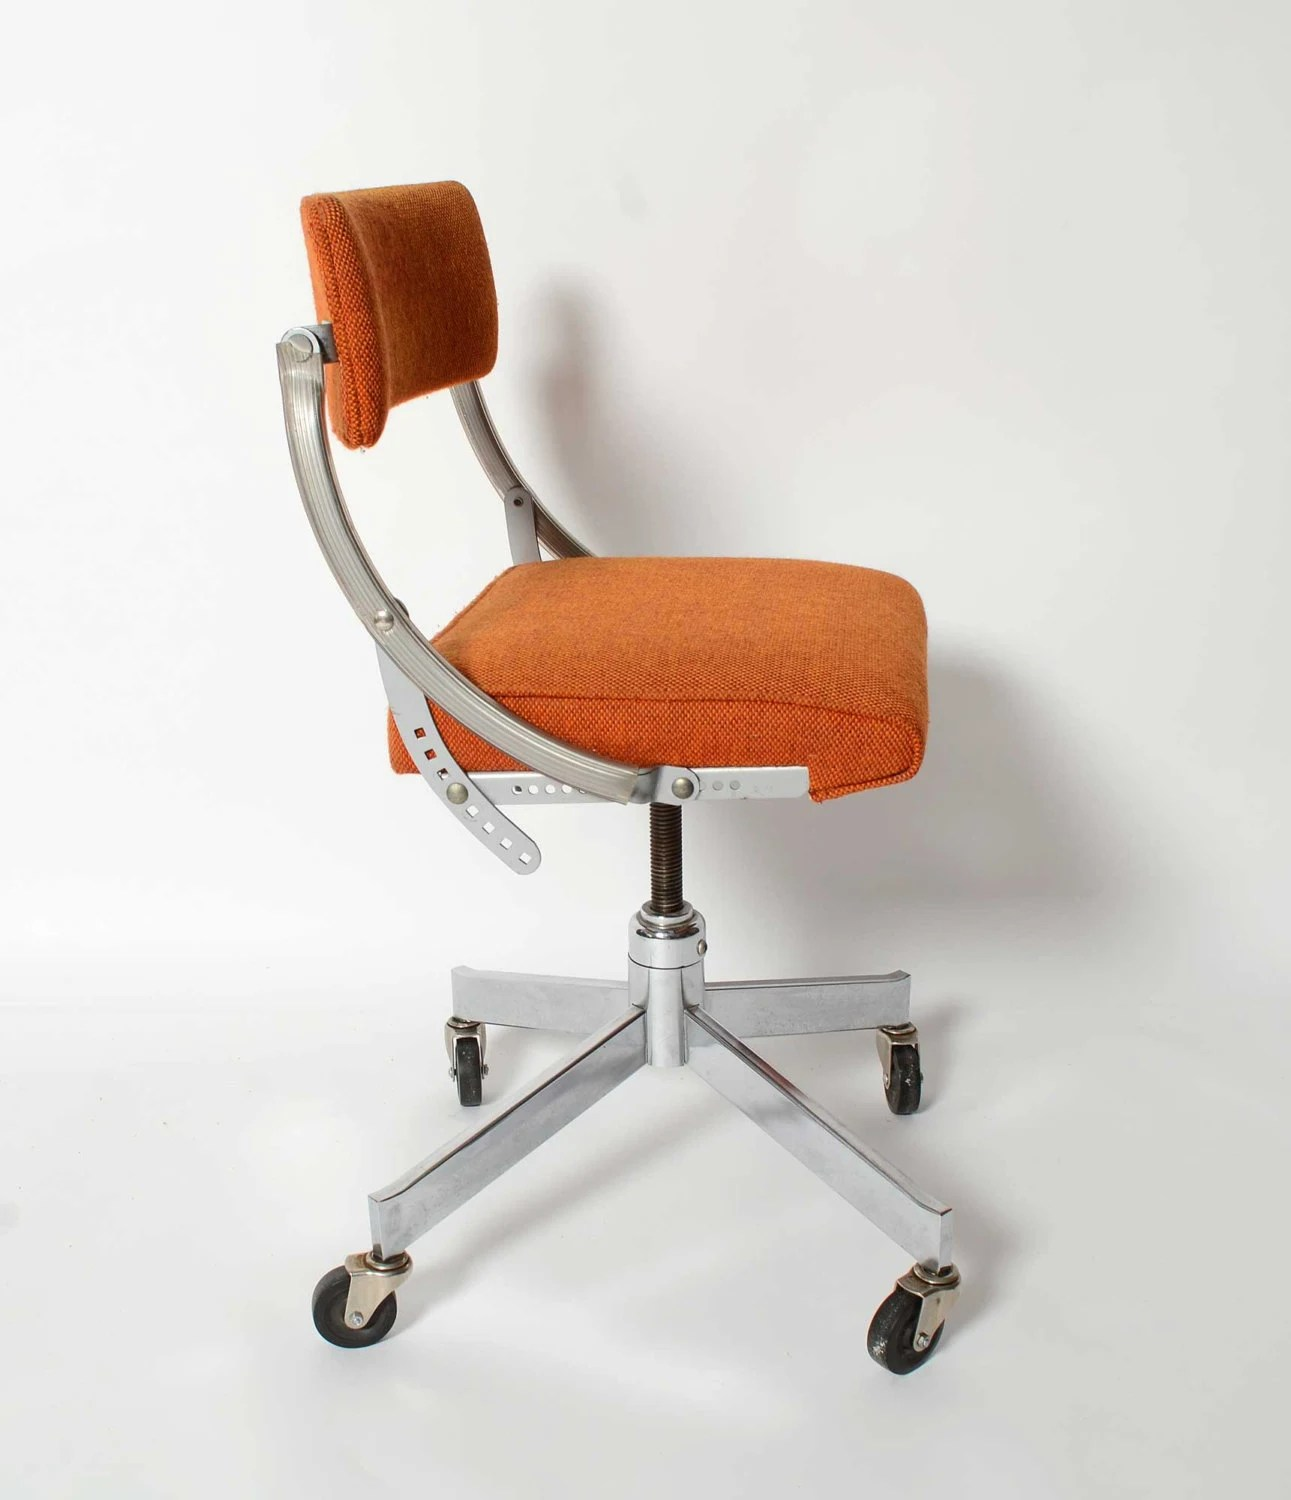 Domore Office Chair Mid Century Modern Industrial Steel Chic